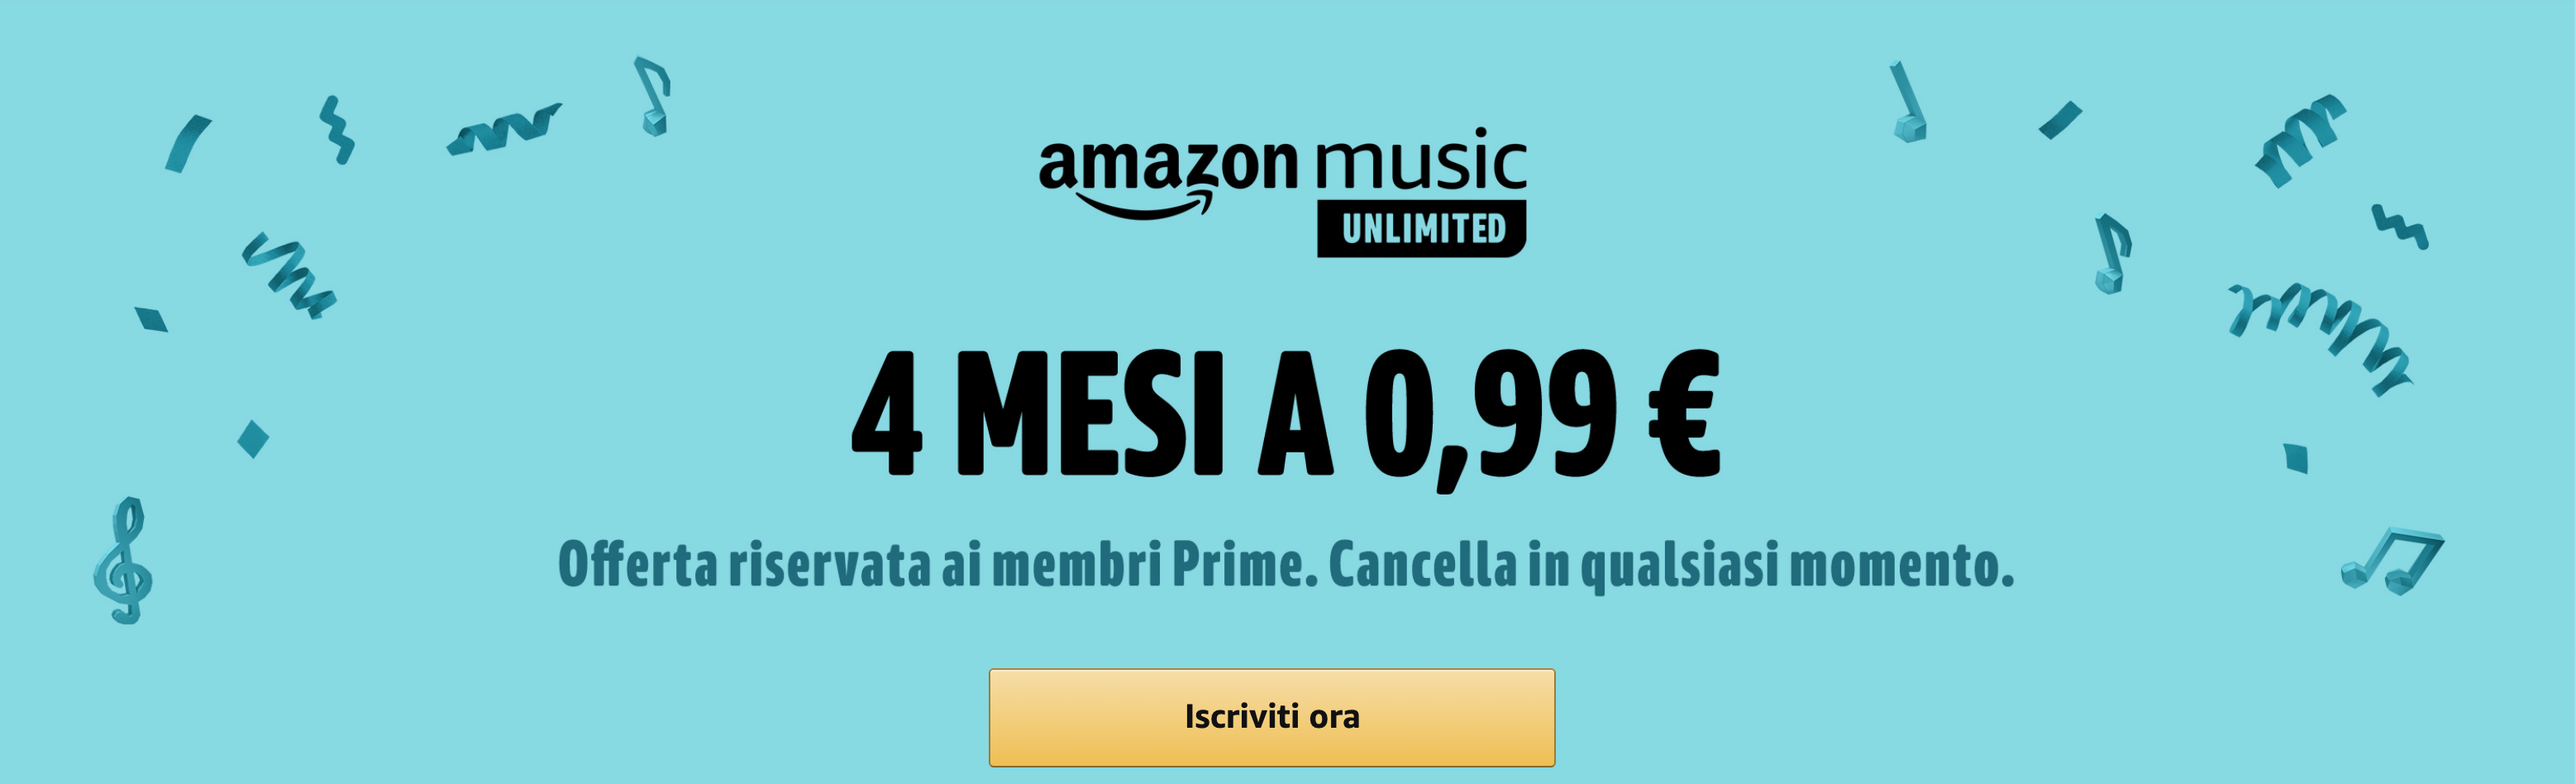 Amazon Music Unlimited 4 mesi 0,99€